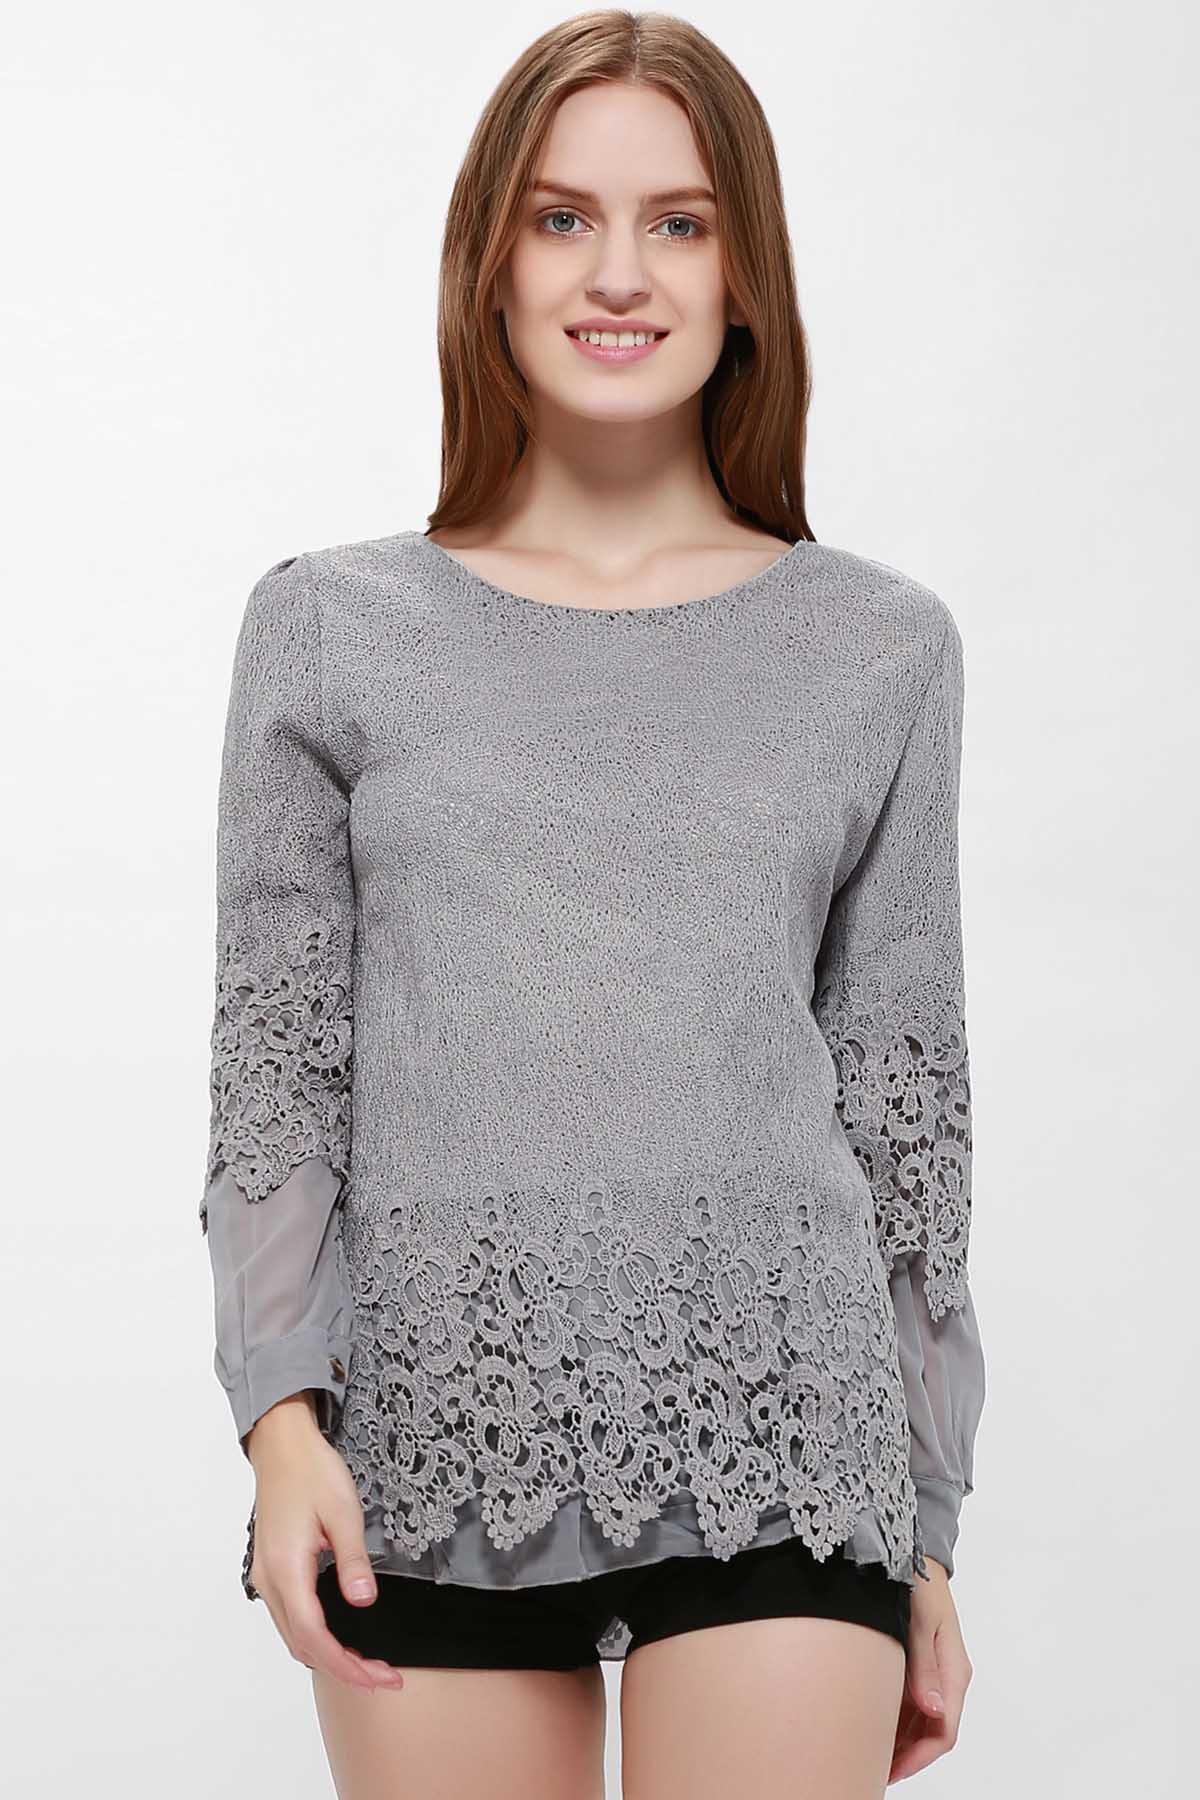 Lace Panel Long Sleeve Casual TopWOMEN<br><br>Size: XL; Color: GRAY; Material: Lace; Shirt Length: Regular; Sleeve Length: Full; Collar: Scoop Neck; Style: Casual; Embellishment: Lace,Panel; Pattern Type: Others; Weight: 0.3000kg; Package Contents: 1 x T-Shirt;